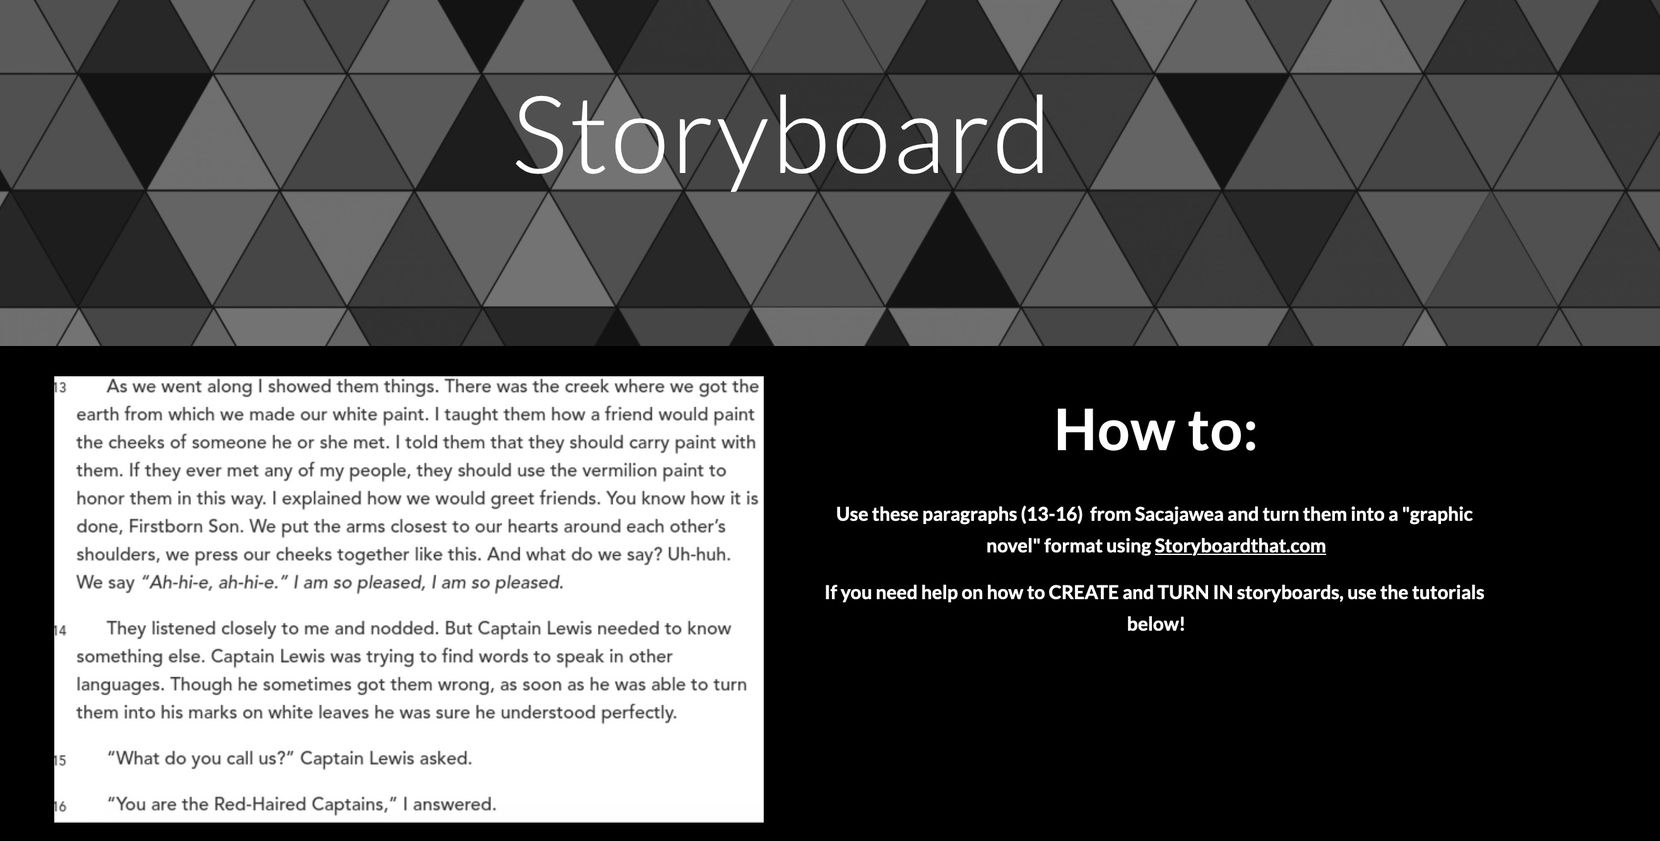 Mesquite teacher Laura Claybrook's class website features an assignment in which students make their own storyboards using online tools.